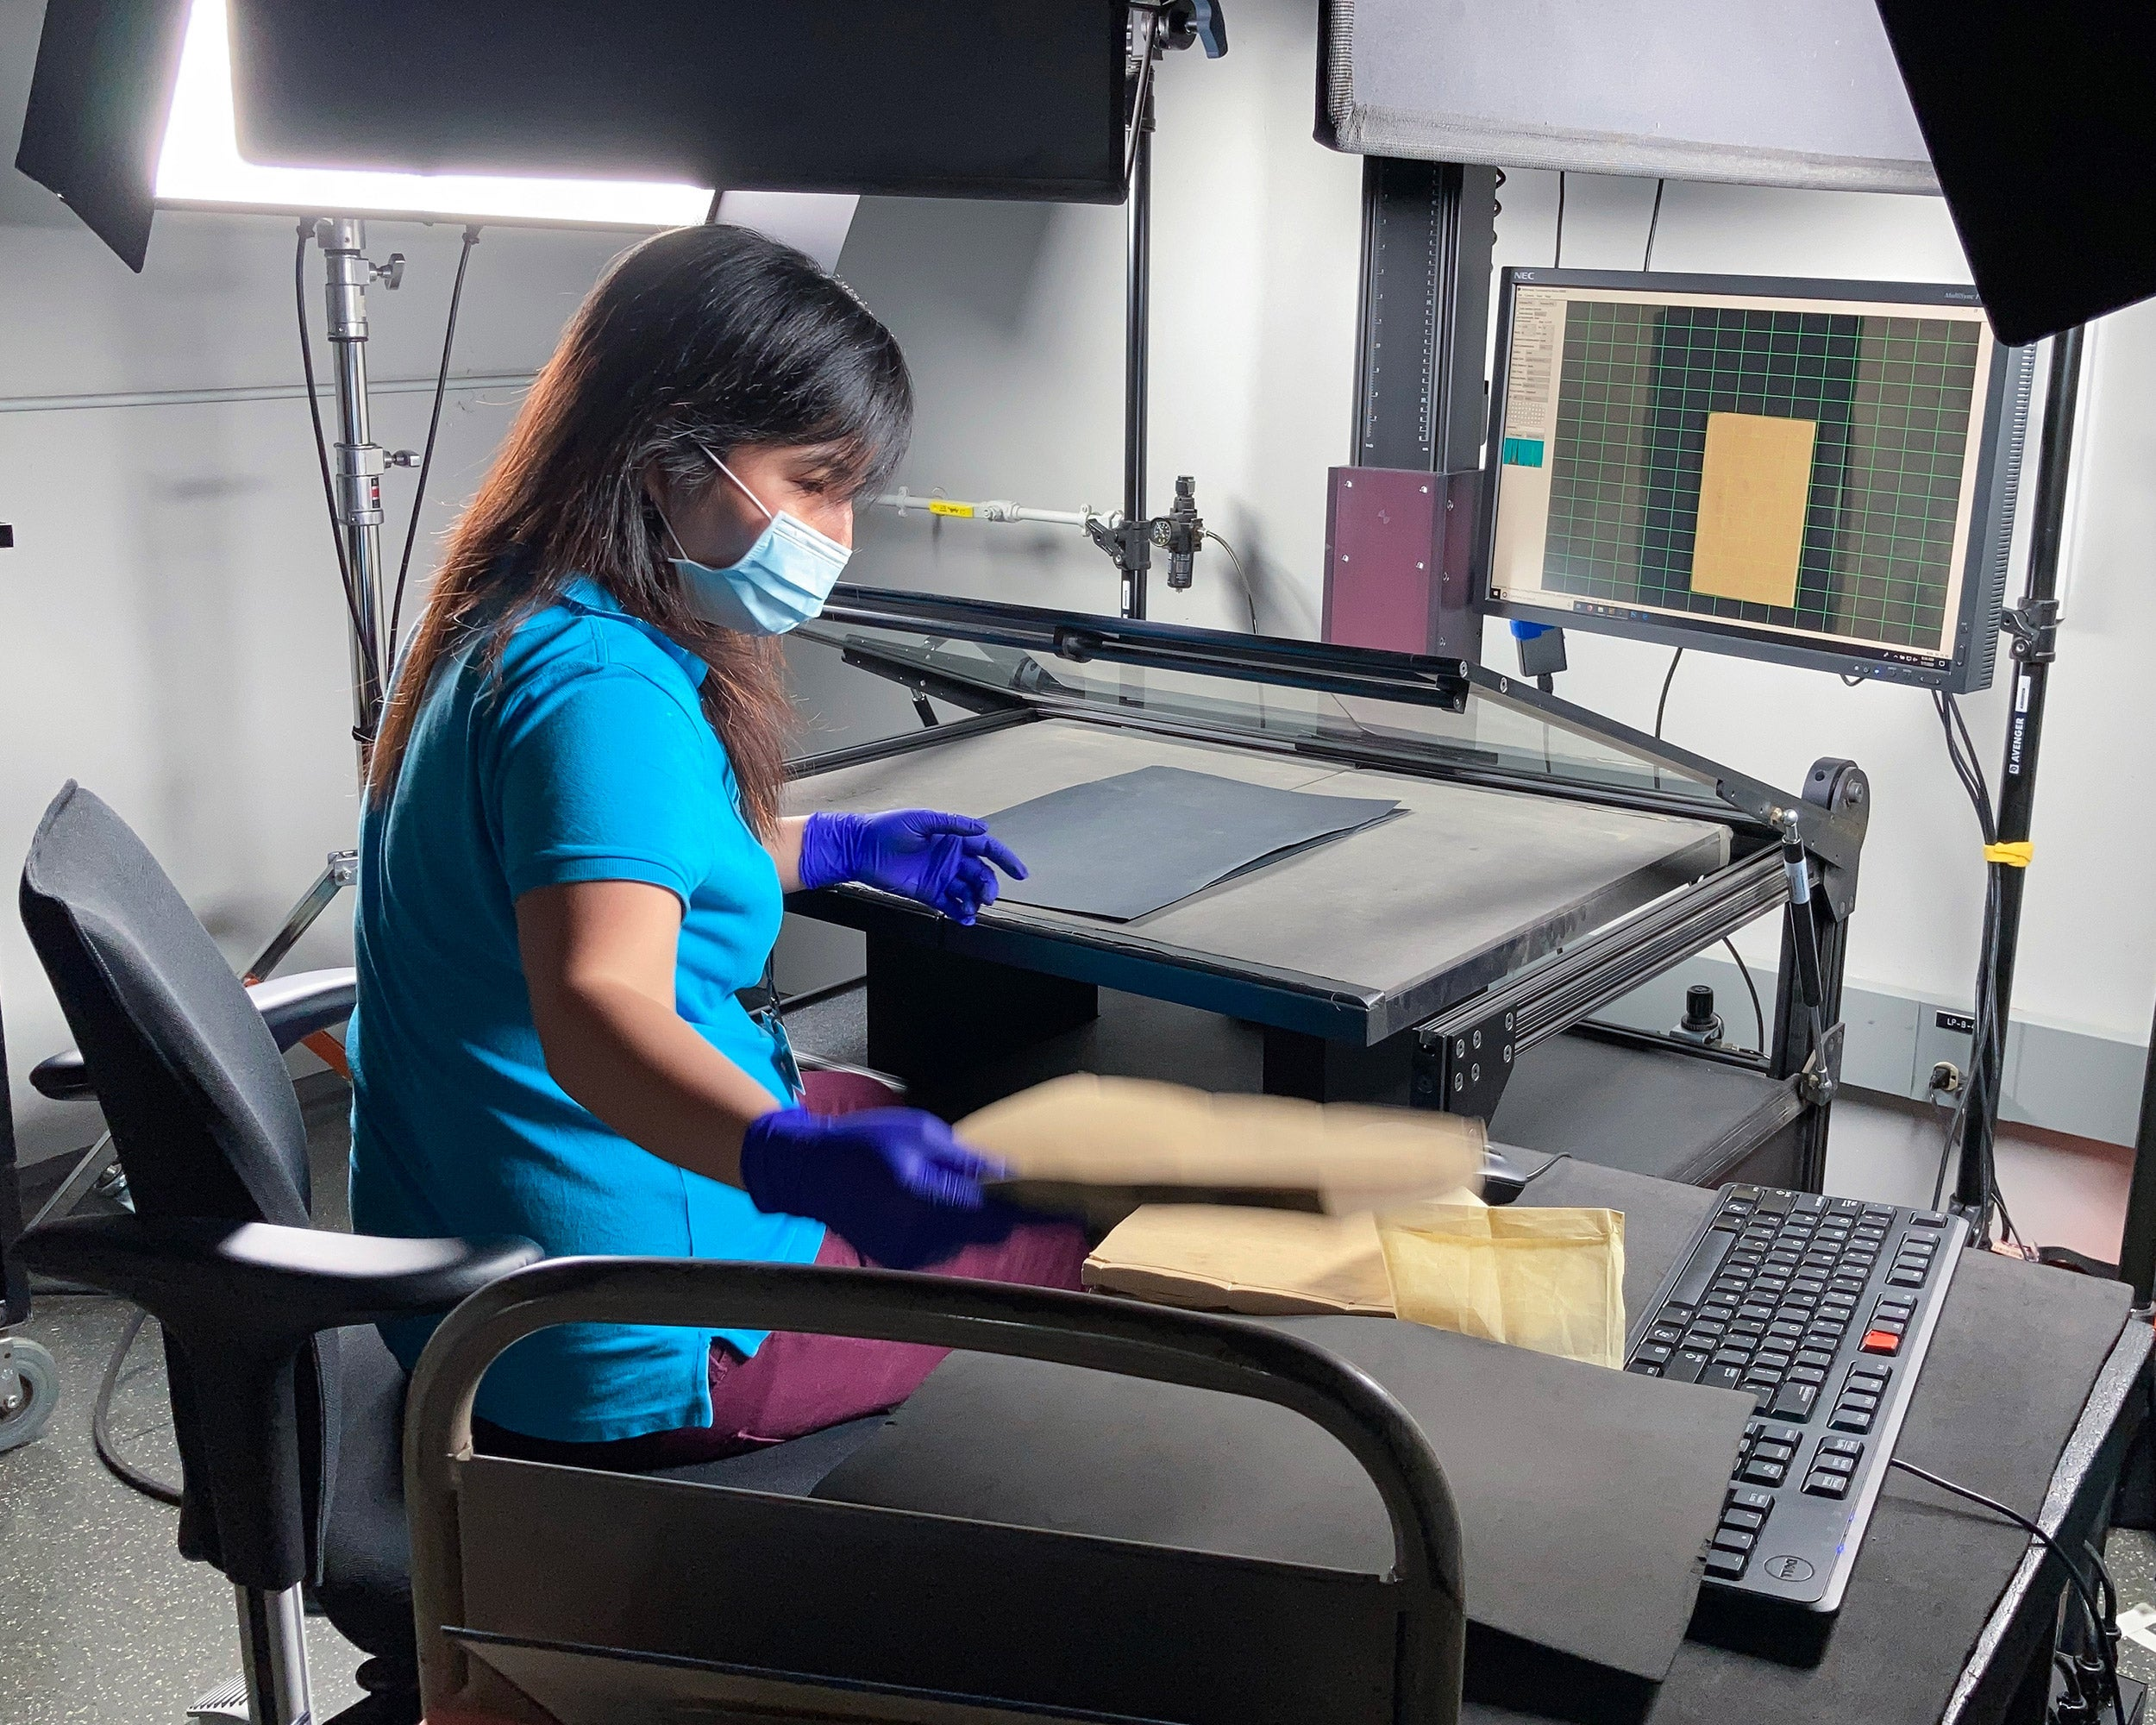 Penny Xu scanning a book.